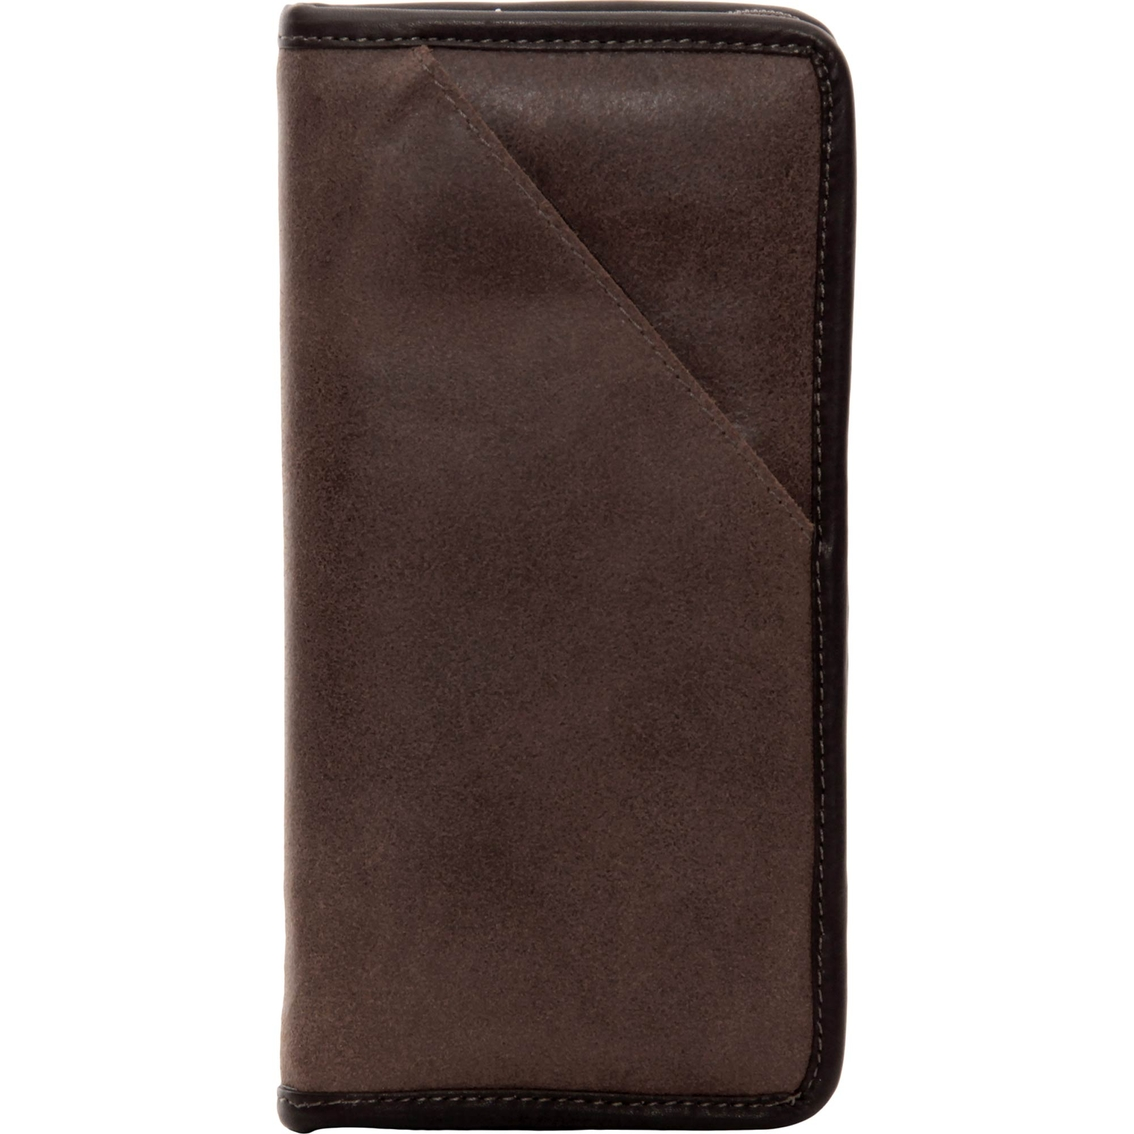 a1dd323574be Piel Leather Vintage Executive Travel Wallet | Wallets & Money Clips ...